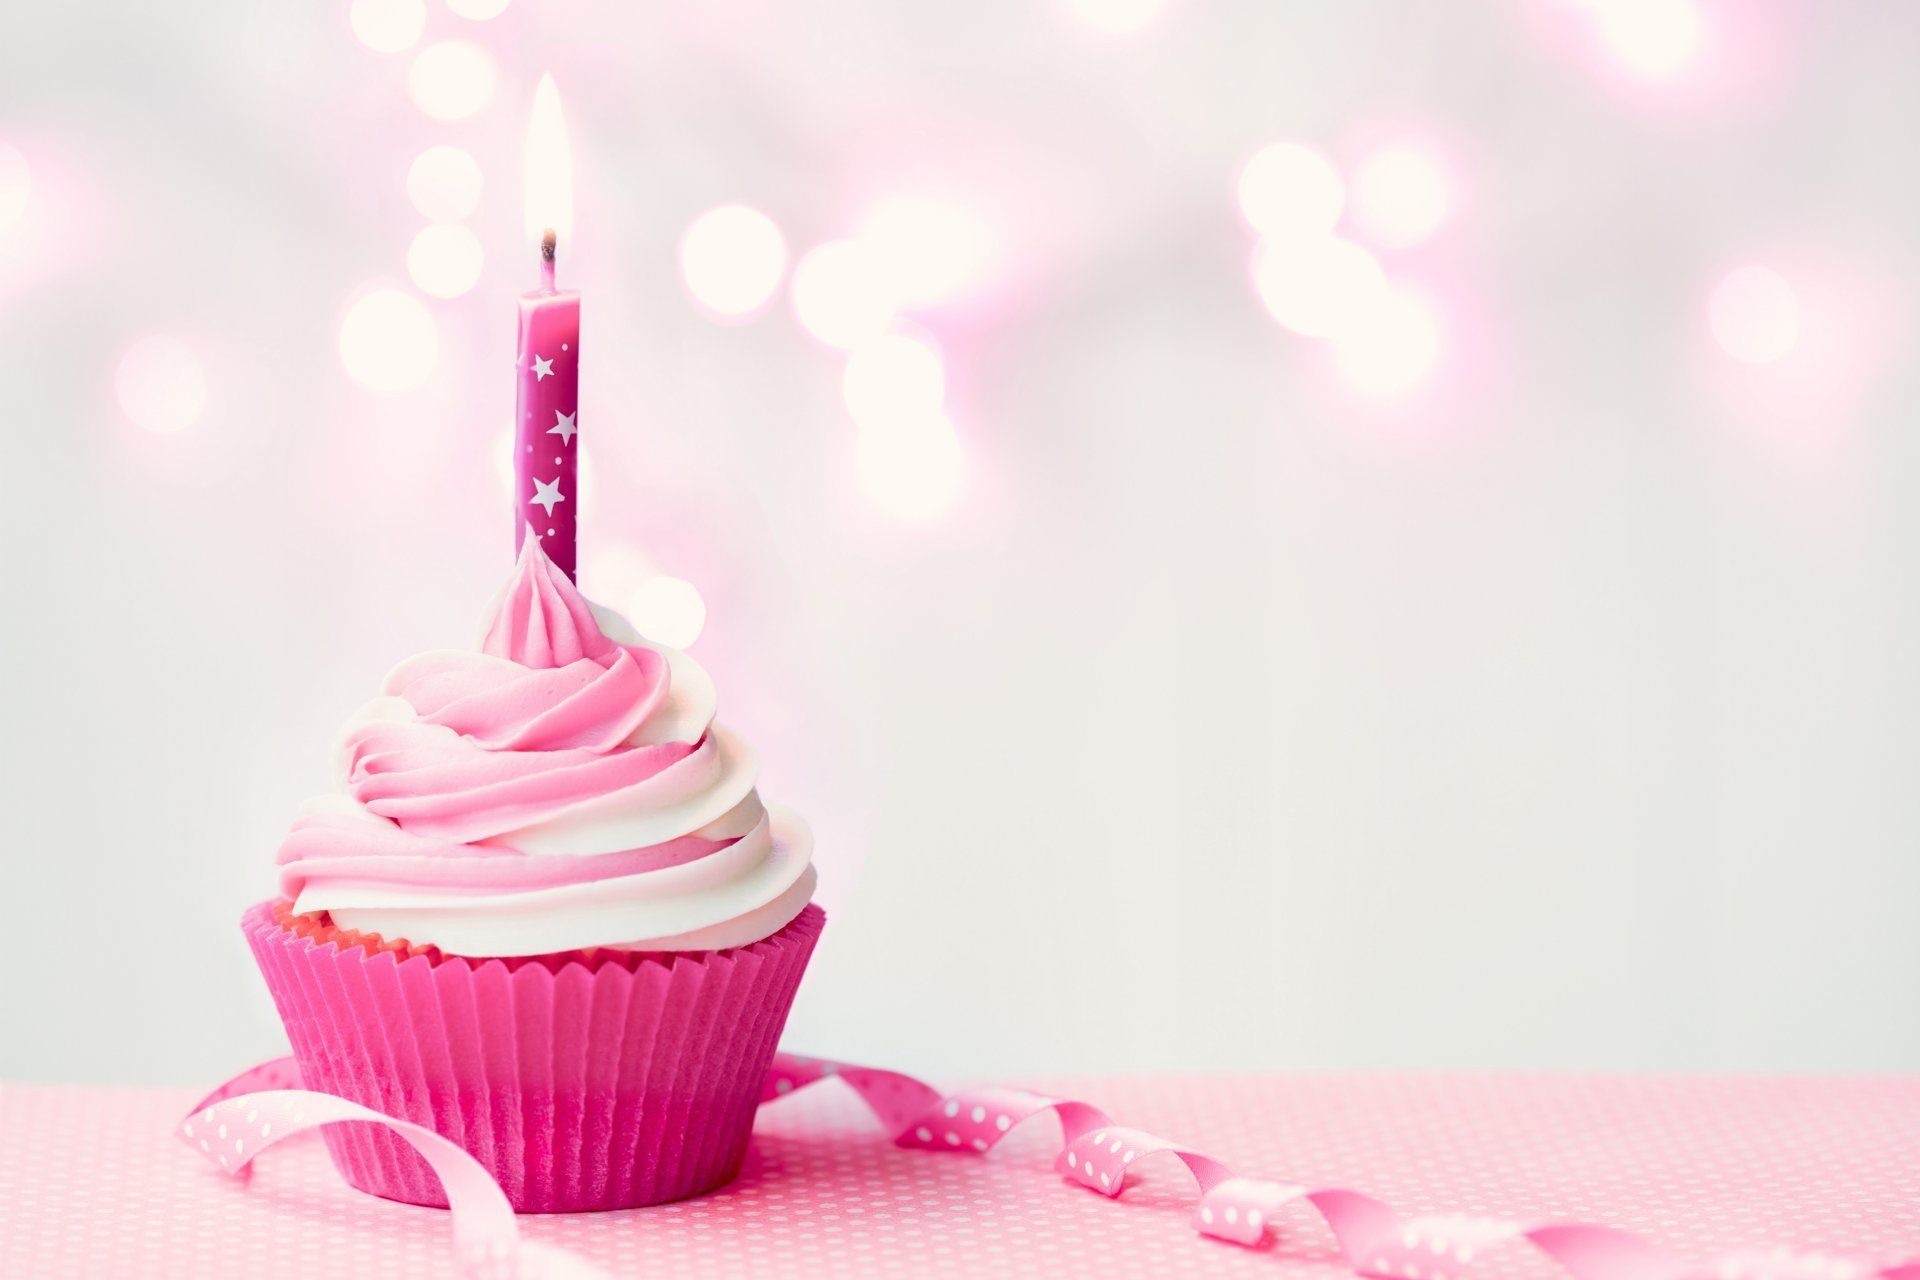 Birthday Cupcake Wallpapers Android With High Definition Wallpaper 1920x1280 Px 12520 KB